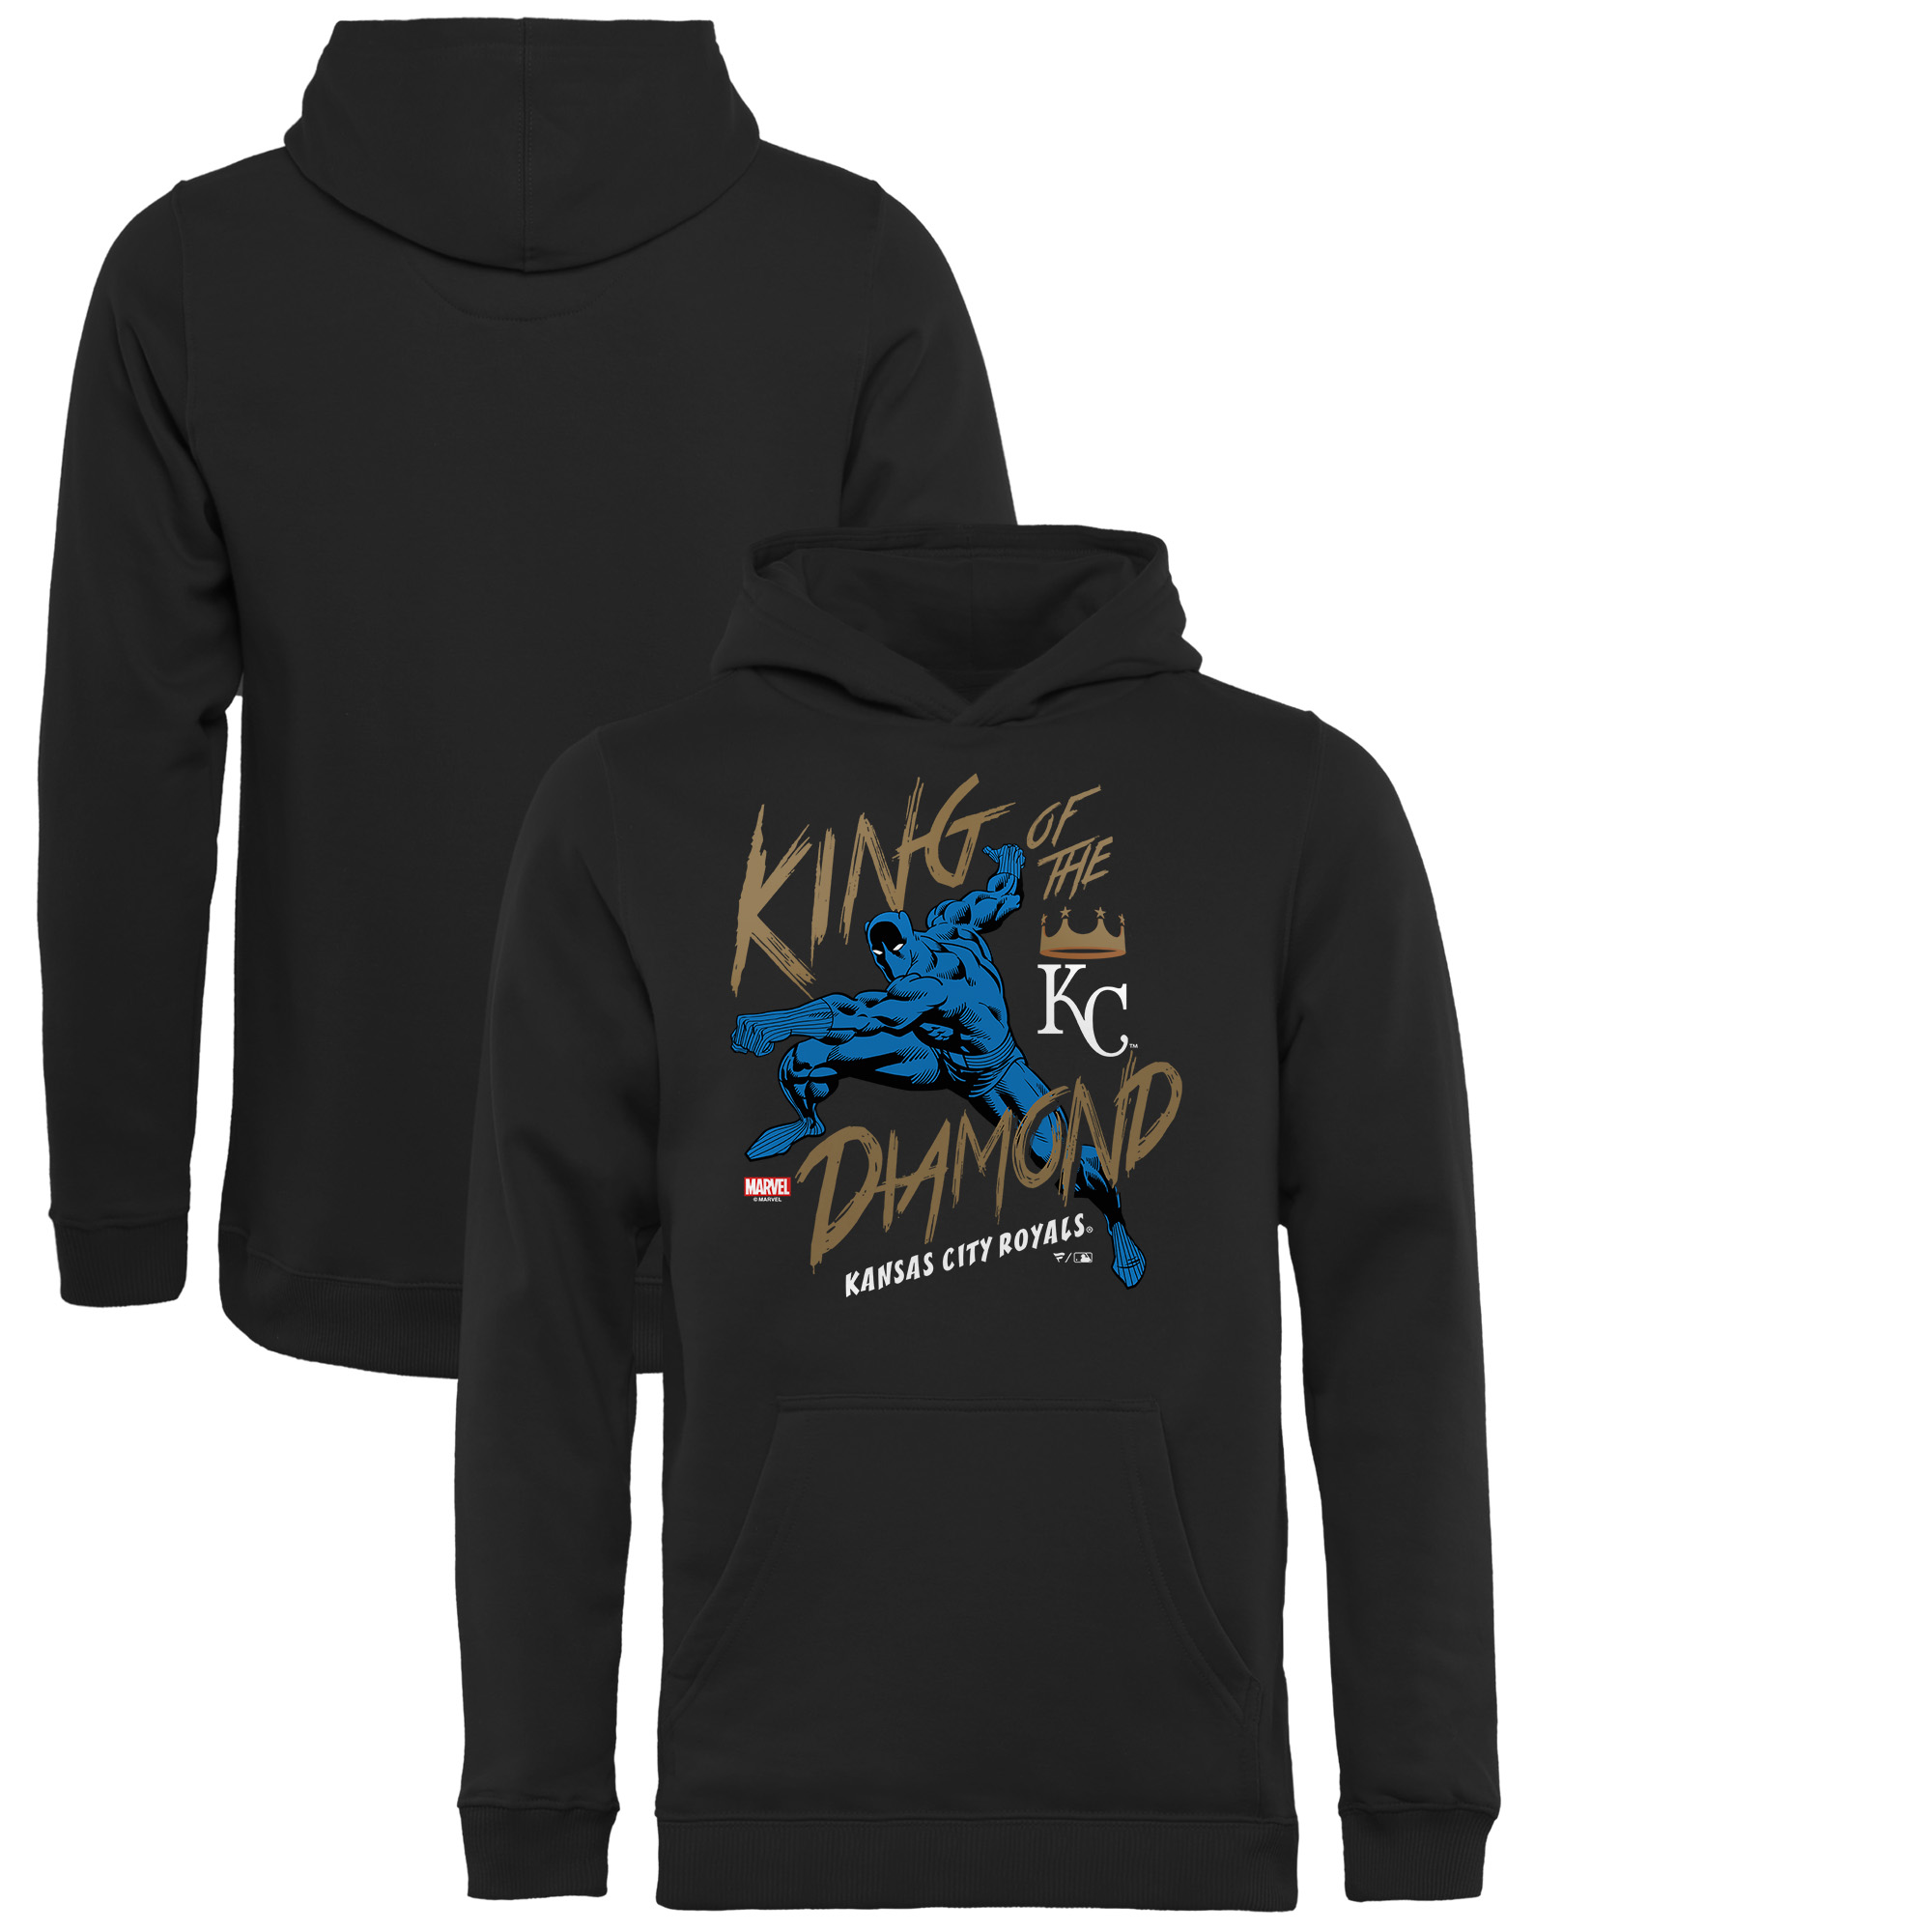 Kansas City Royals Fanatics Branded Youth MLB Marvel Black Panther King of the Diamond Pullover Hoodie - Black